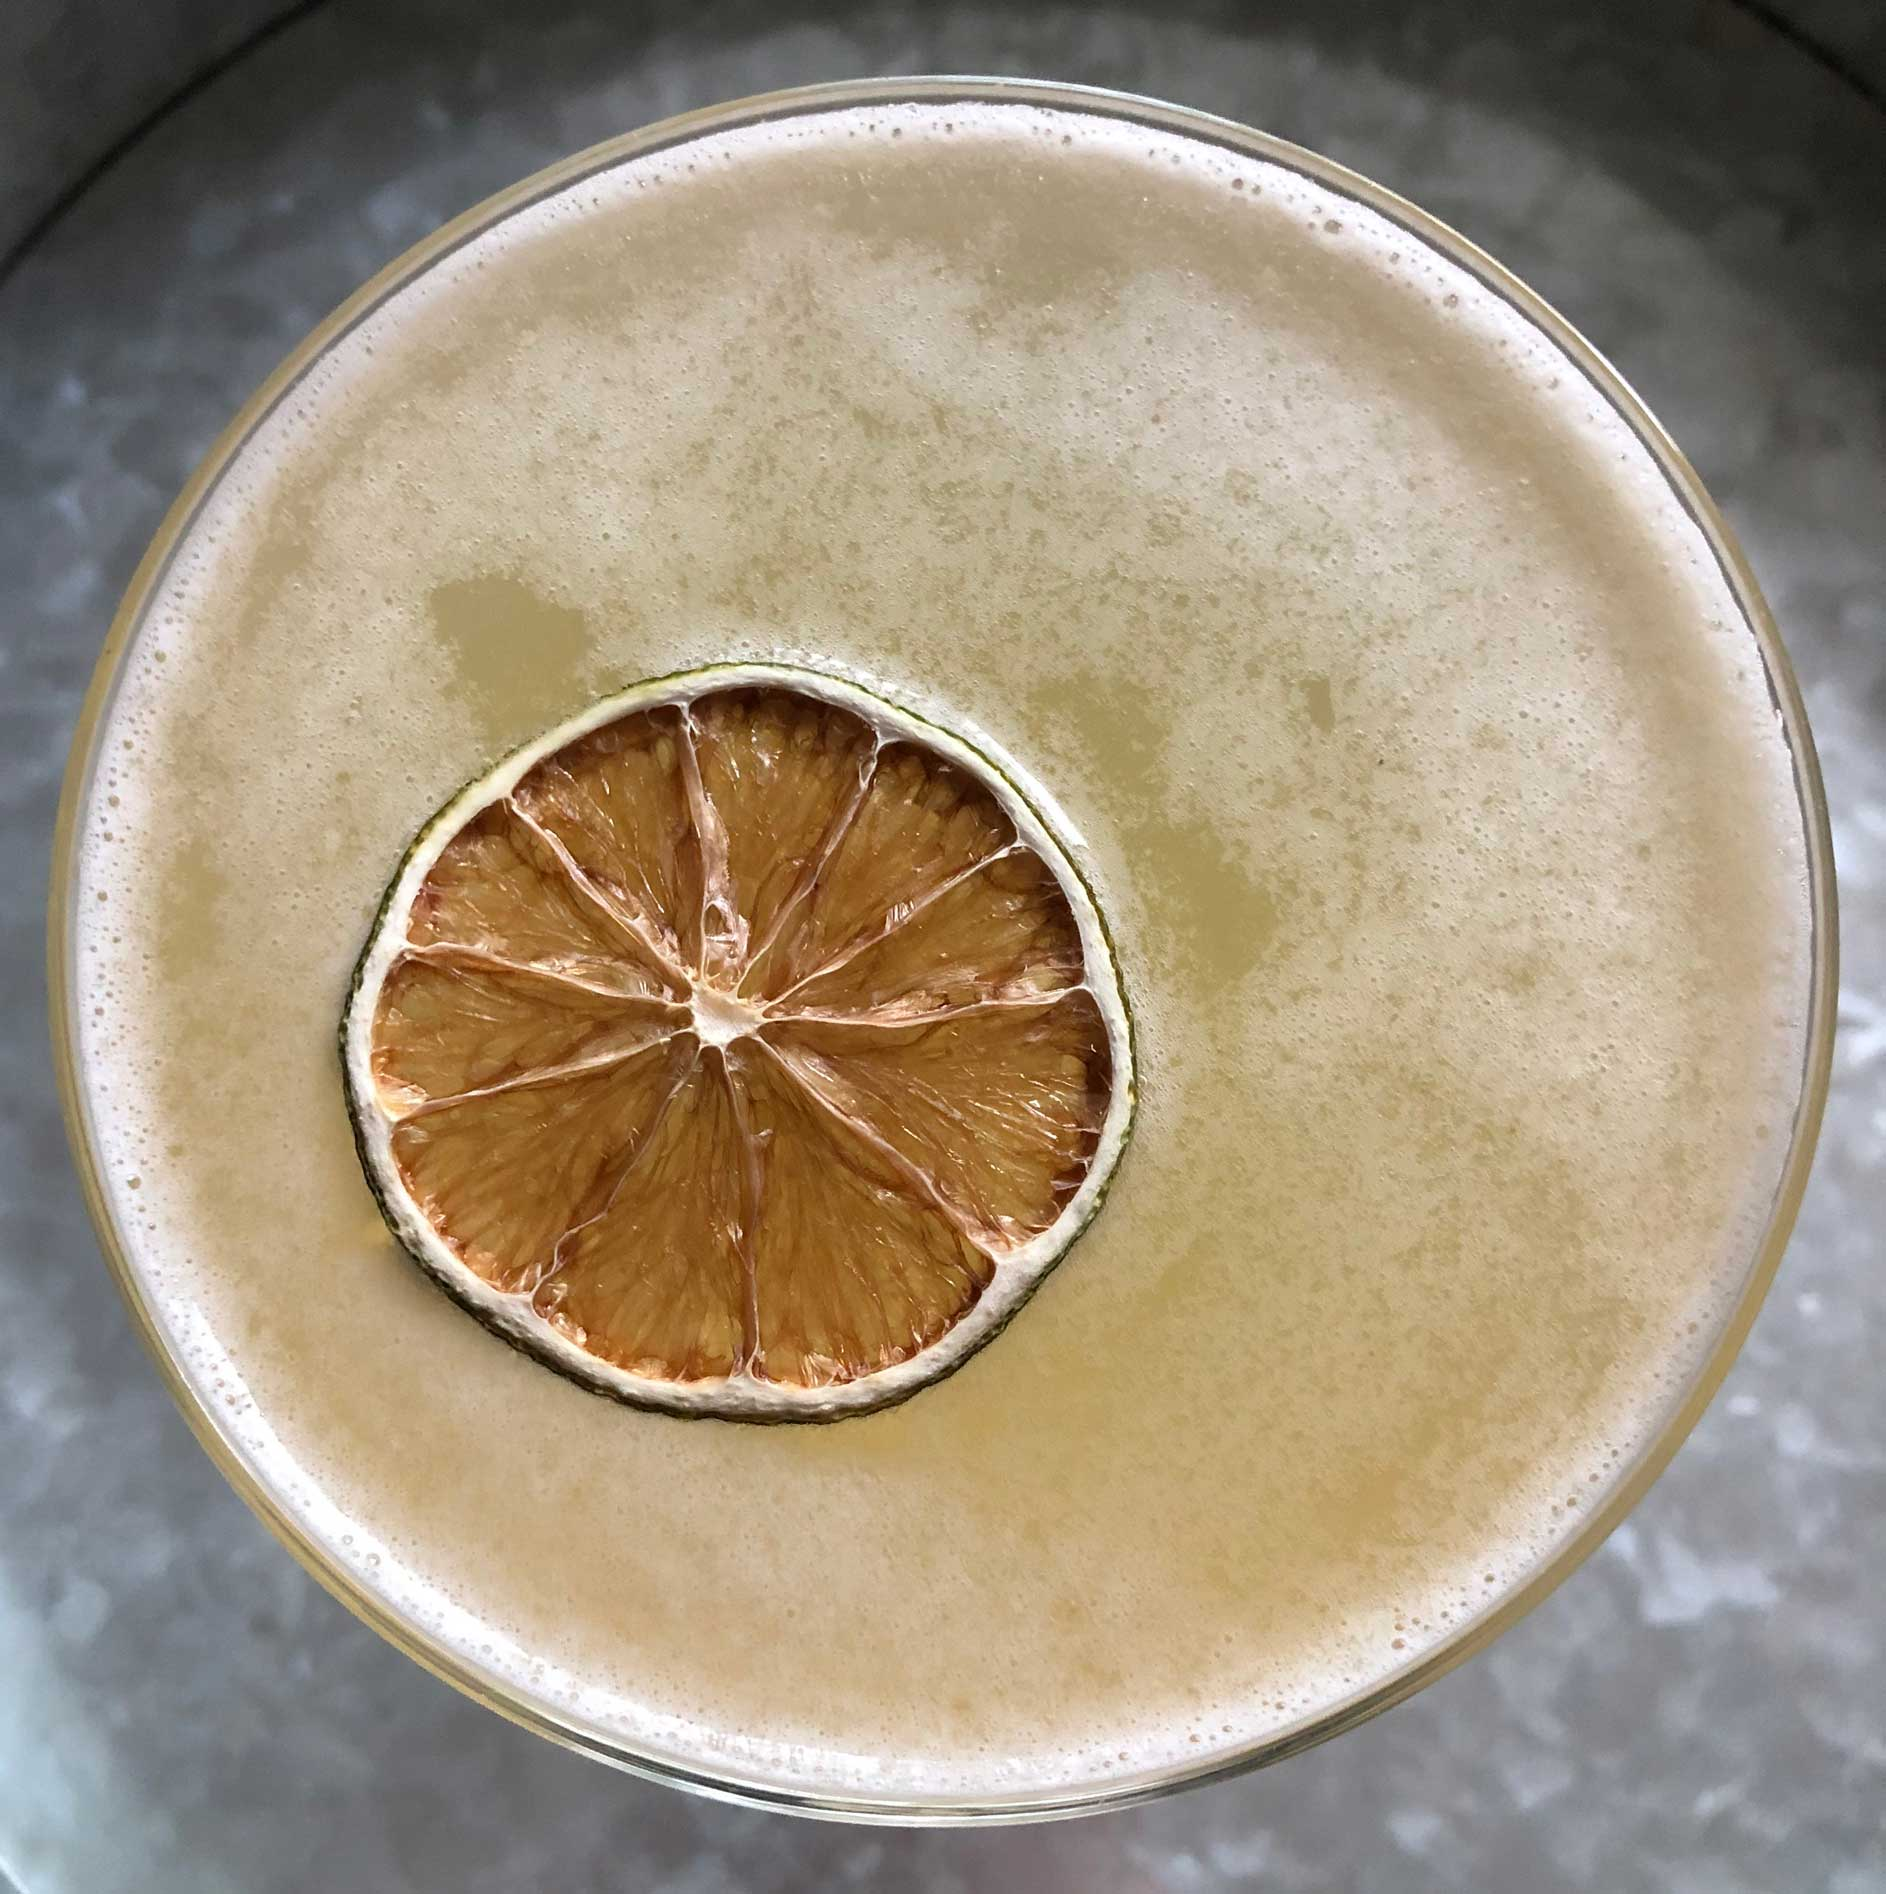 An example of the Airmail, the mixed drink (cocktail) featuring sparkling wine, Batavia Arrack van Oosten, lime juice, and raw sugar syrup; photo by Lee Edwards